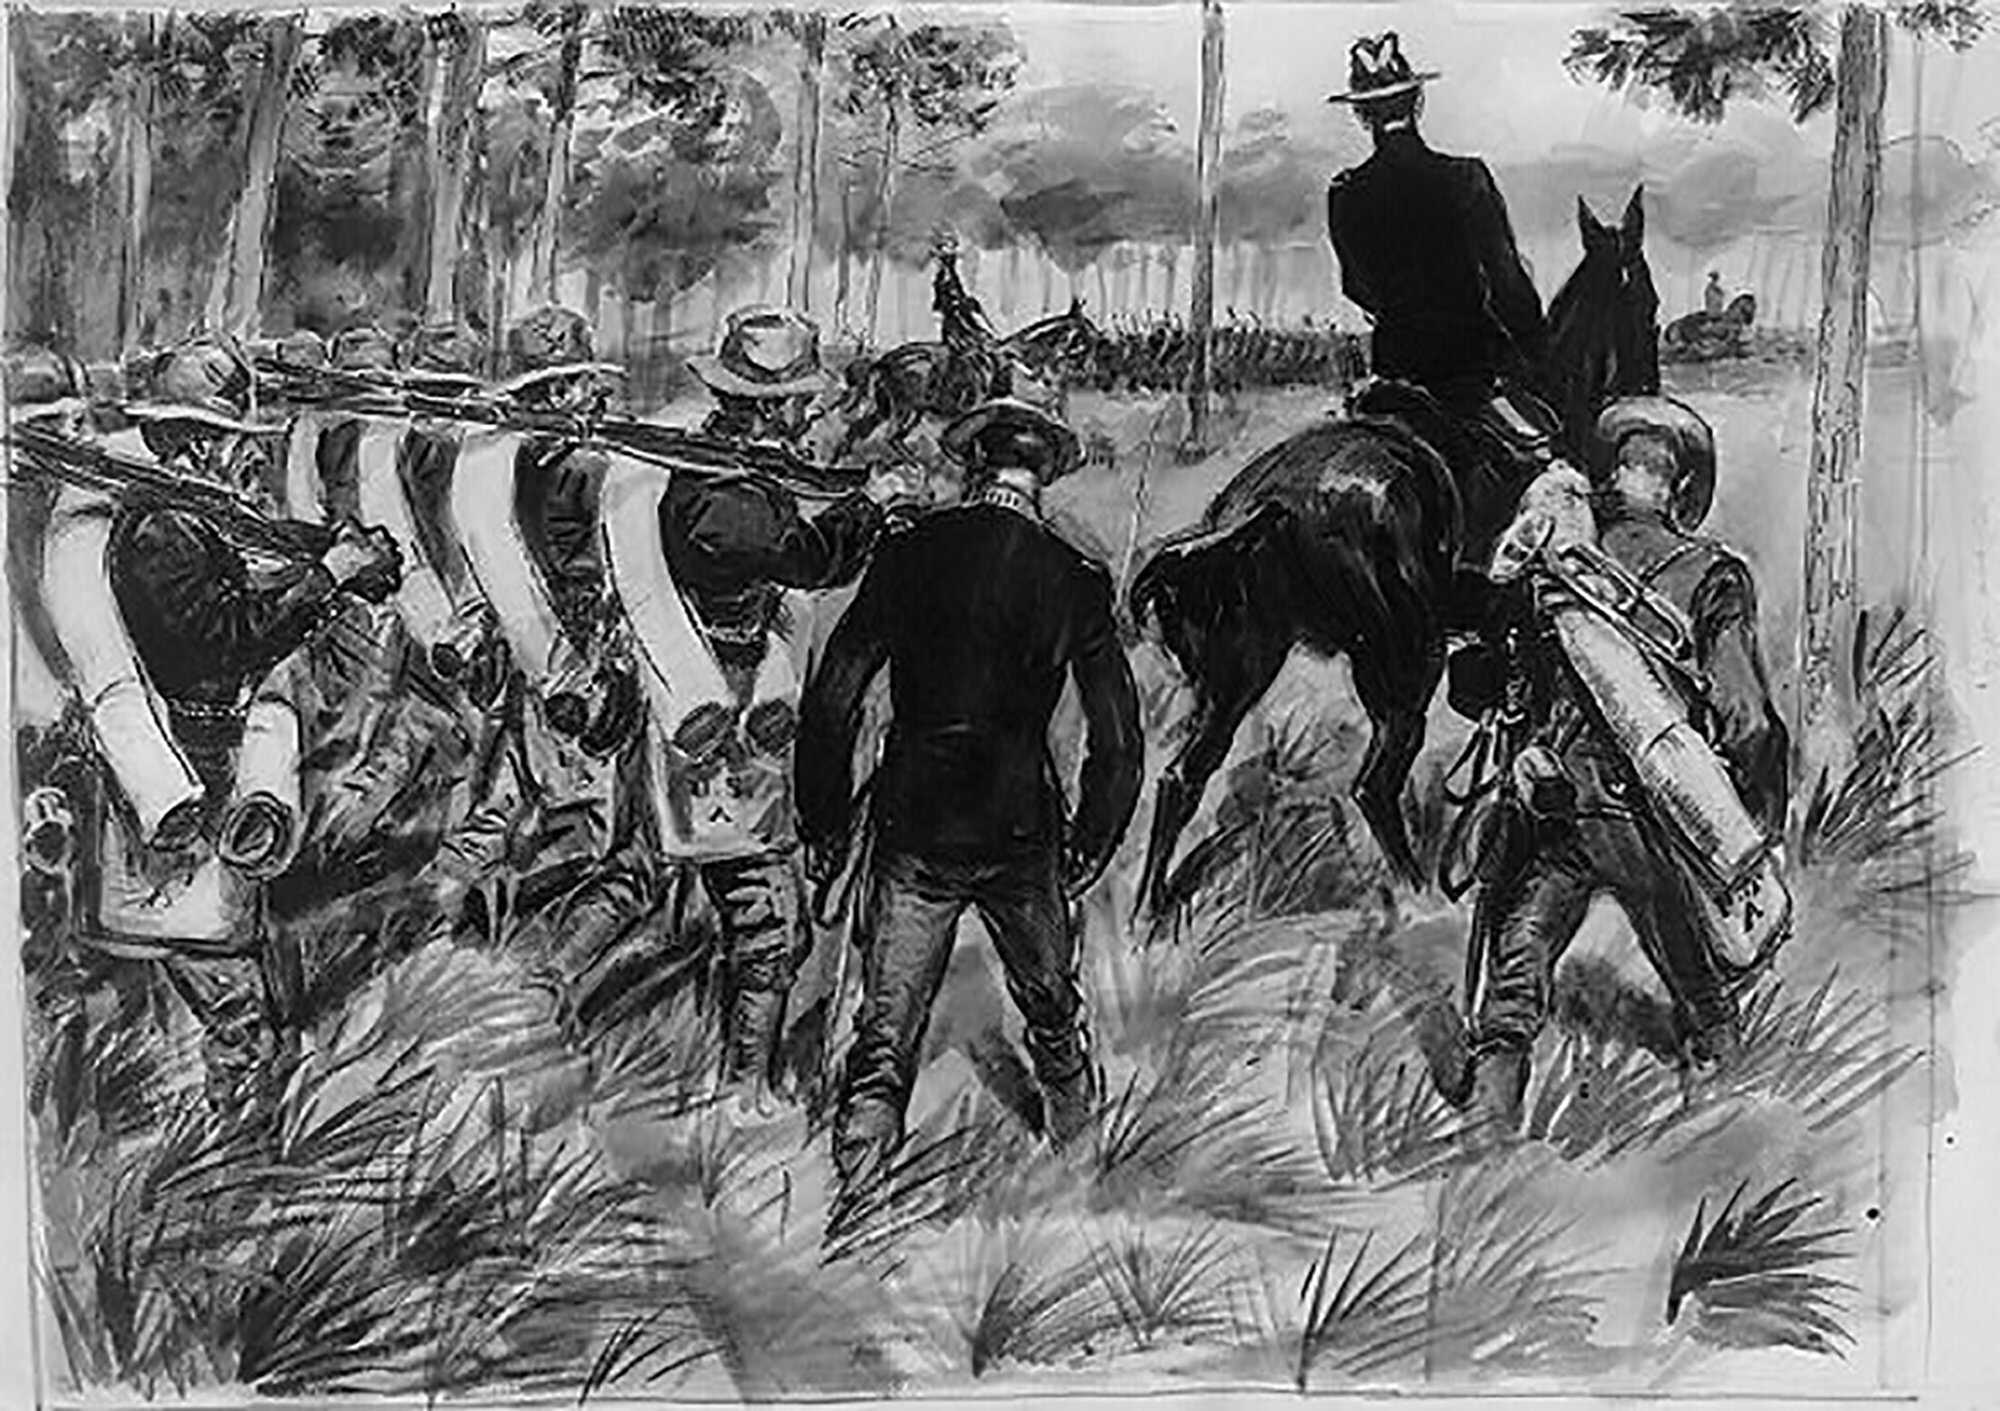 Macarthur-Spanish-American-War-Troops-on-the-march-Spanish-American-War-Contributor-Glackens-William-J-1870-1938-LOC.jpg